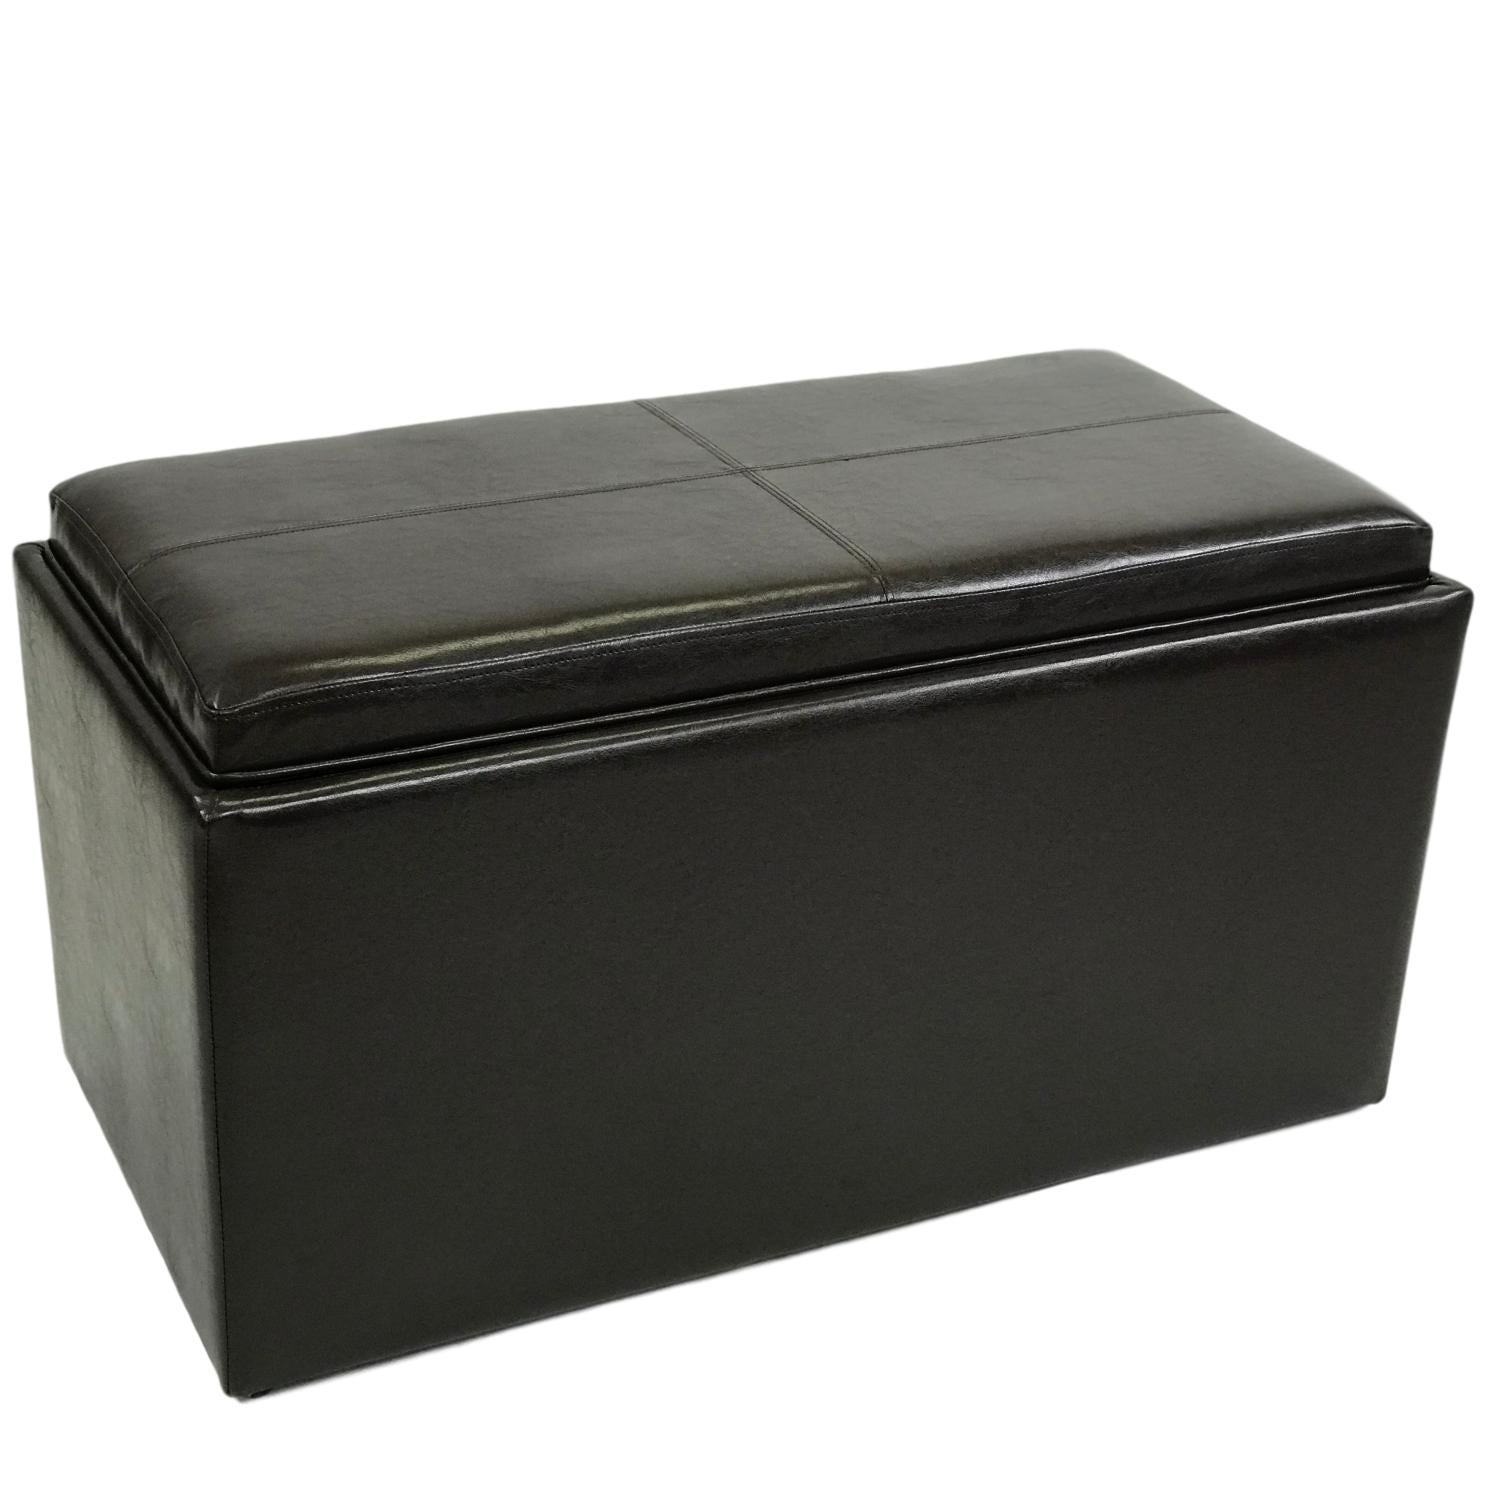 ViscoLogic 3-Piece Rectangular Storage Ottoman WIth Serving Tray & 2 Small Ottomans (Dark Brown)